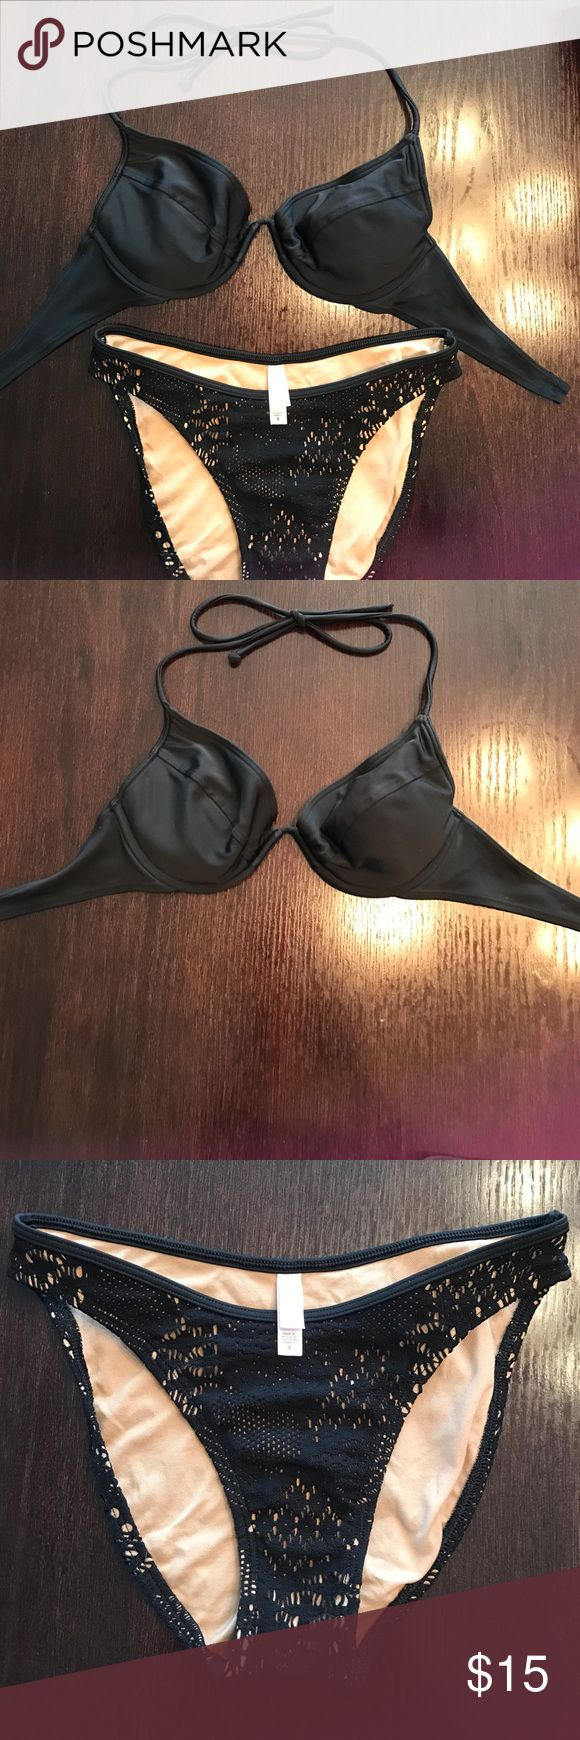 Victoria's Secret swim suit Victoria's Secret swim suit. Top is black size 36B. Bottoms are black and nude size small Victoria's Secret Swim Bikinis